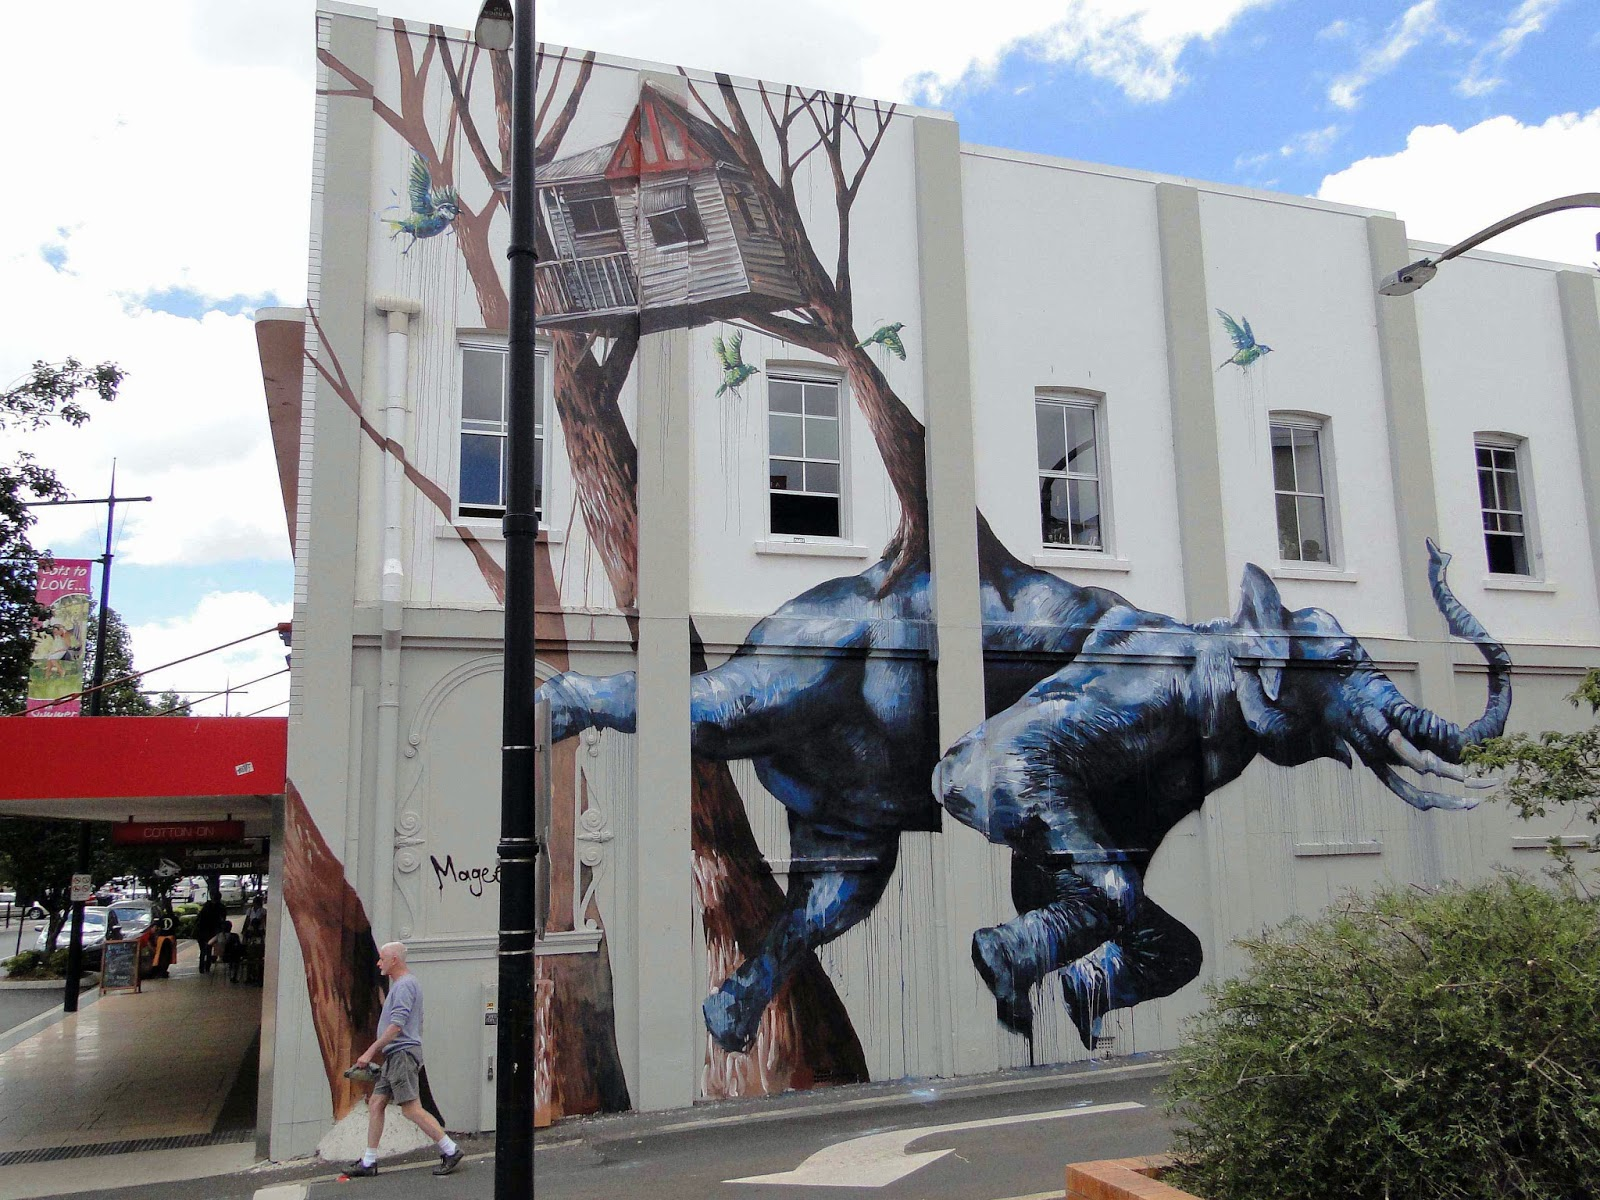 Fintan Magee spent the last few days in Toowoomba, a city in South-East Queensland, Australia, where he worked his way through this massive street art piece.